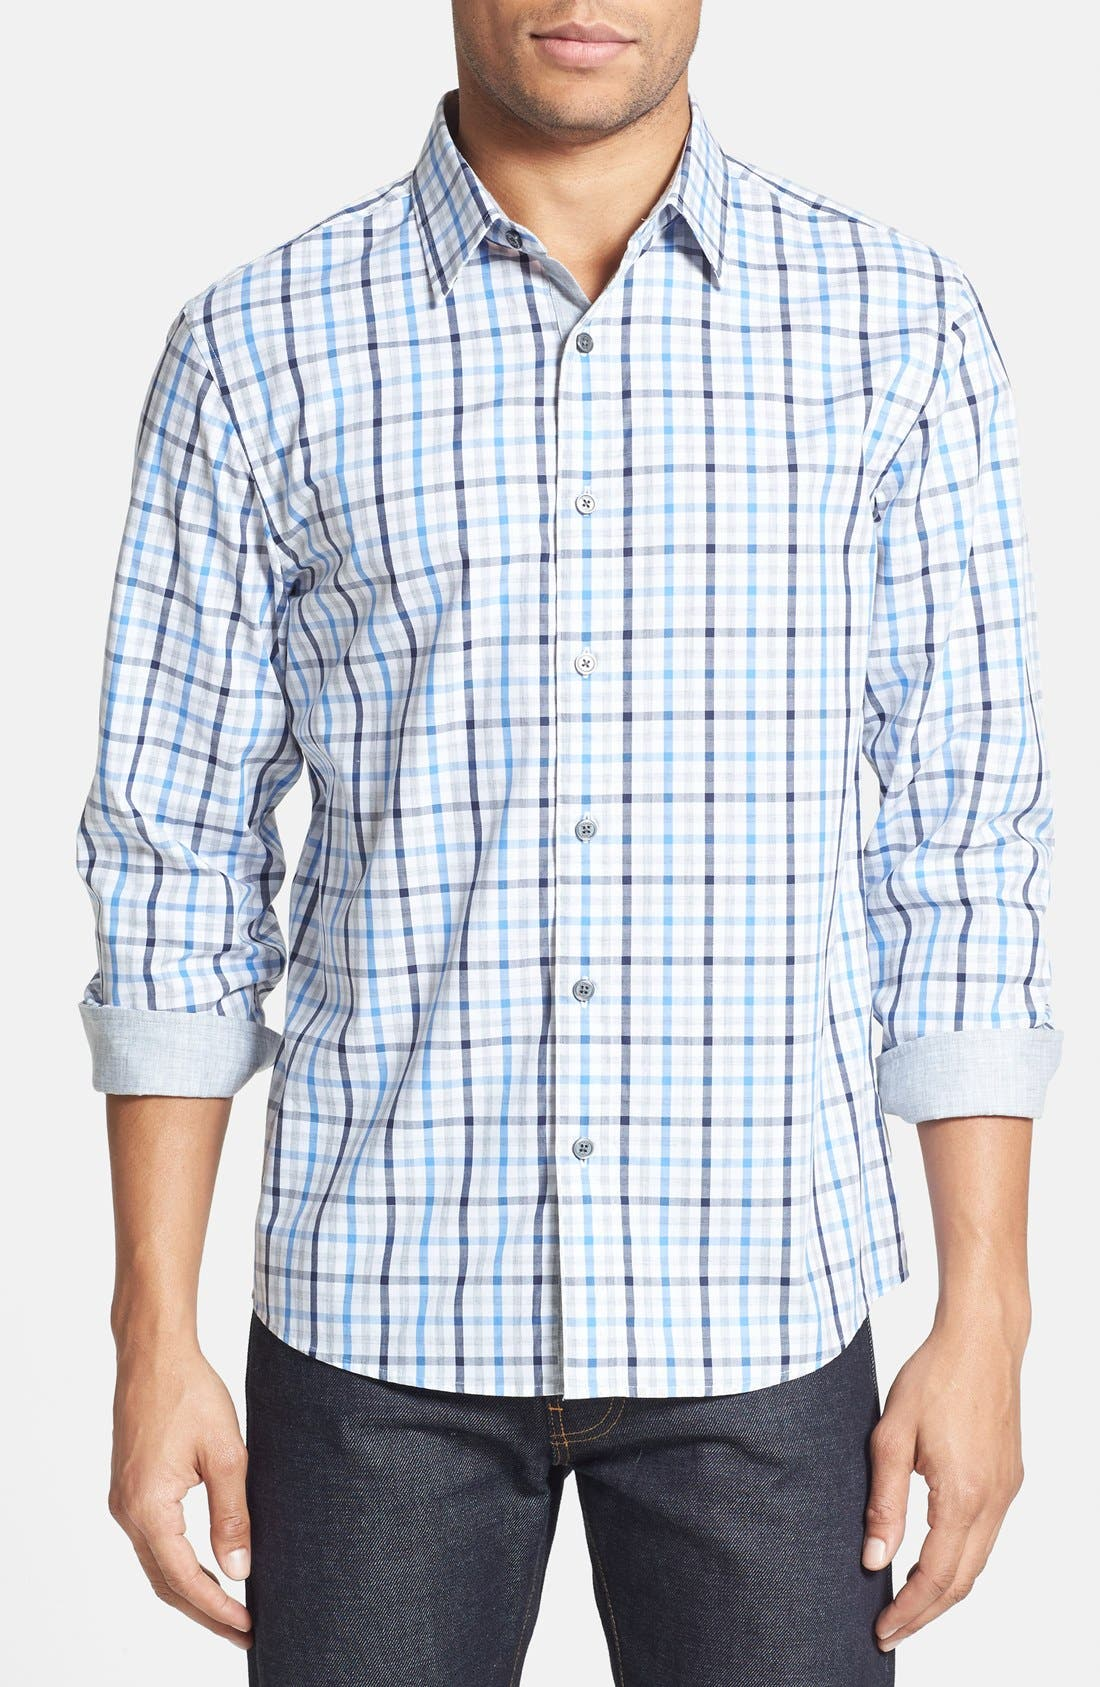 Alternate Image 1 Selected - Michael Kors 'Nixon' Trim Fit Sport Shirt